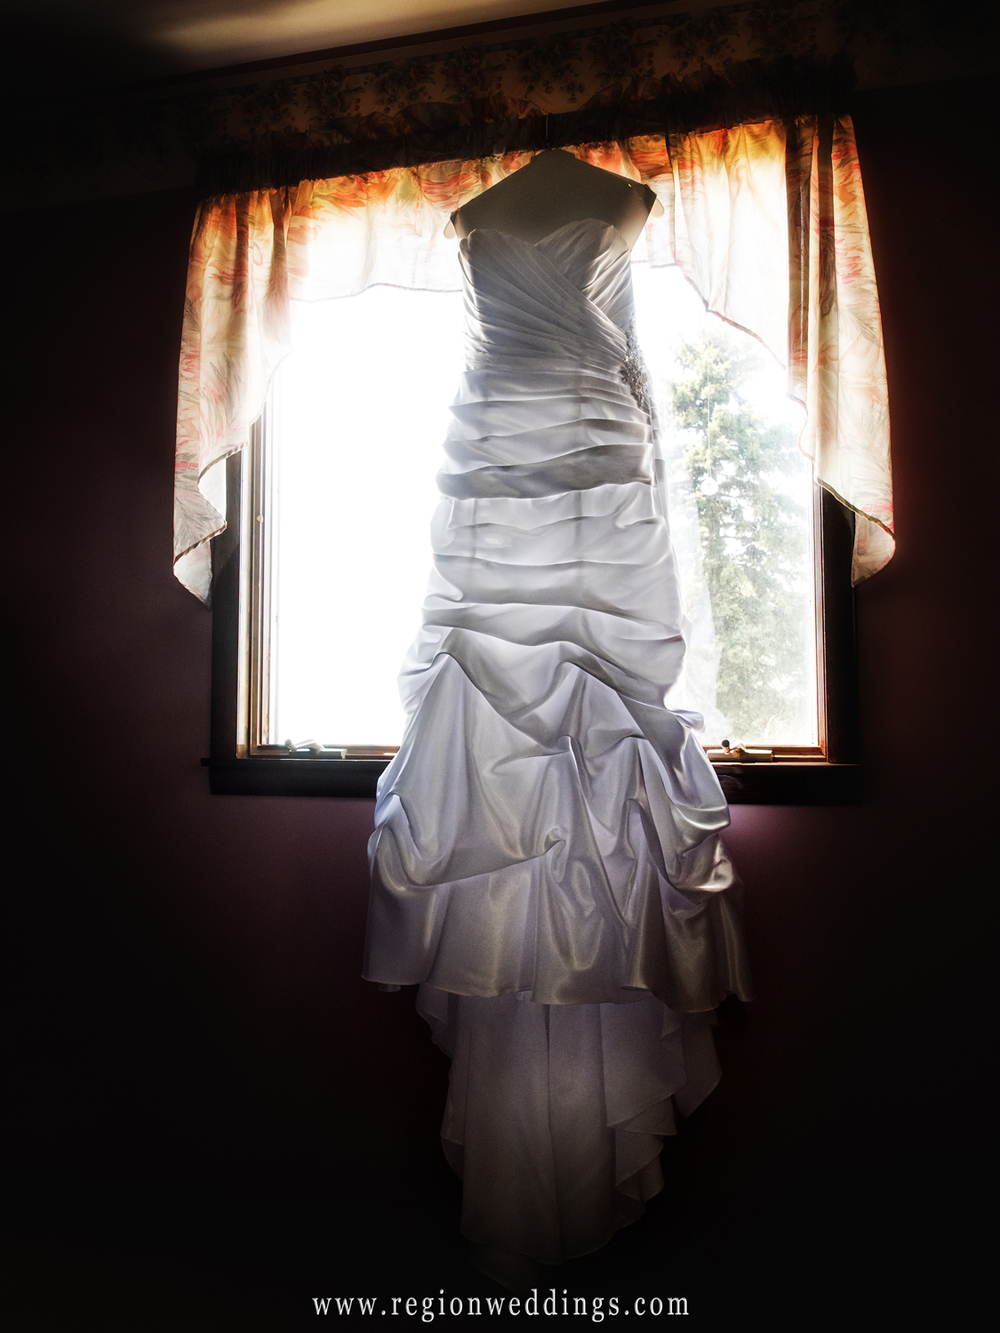 The wedding dress awaits the bride as it hangs in front of a window.